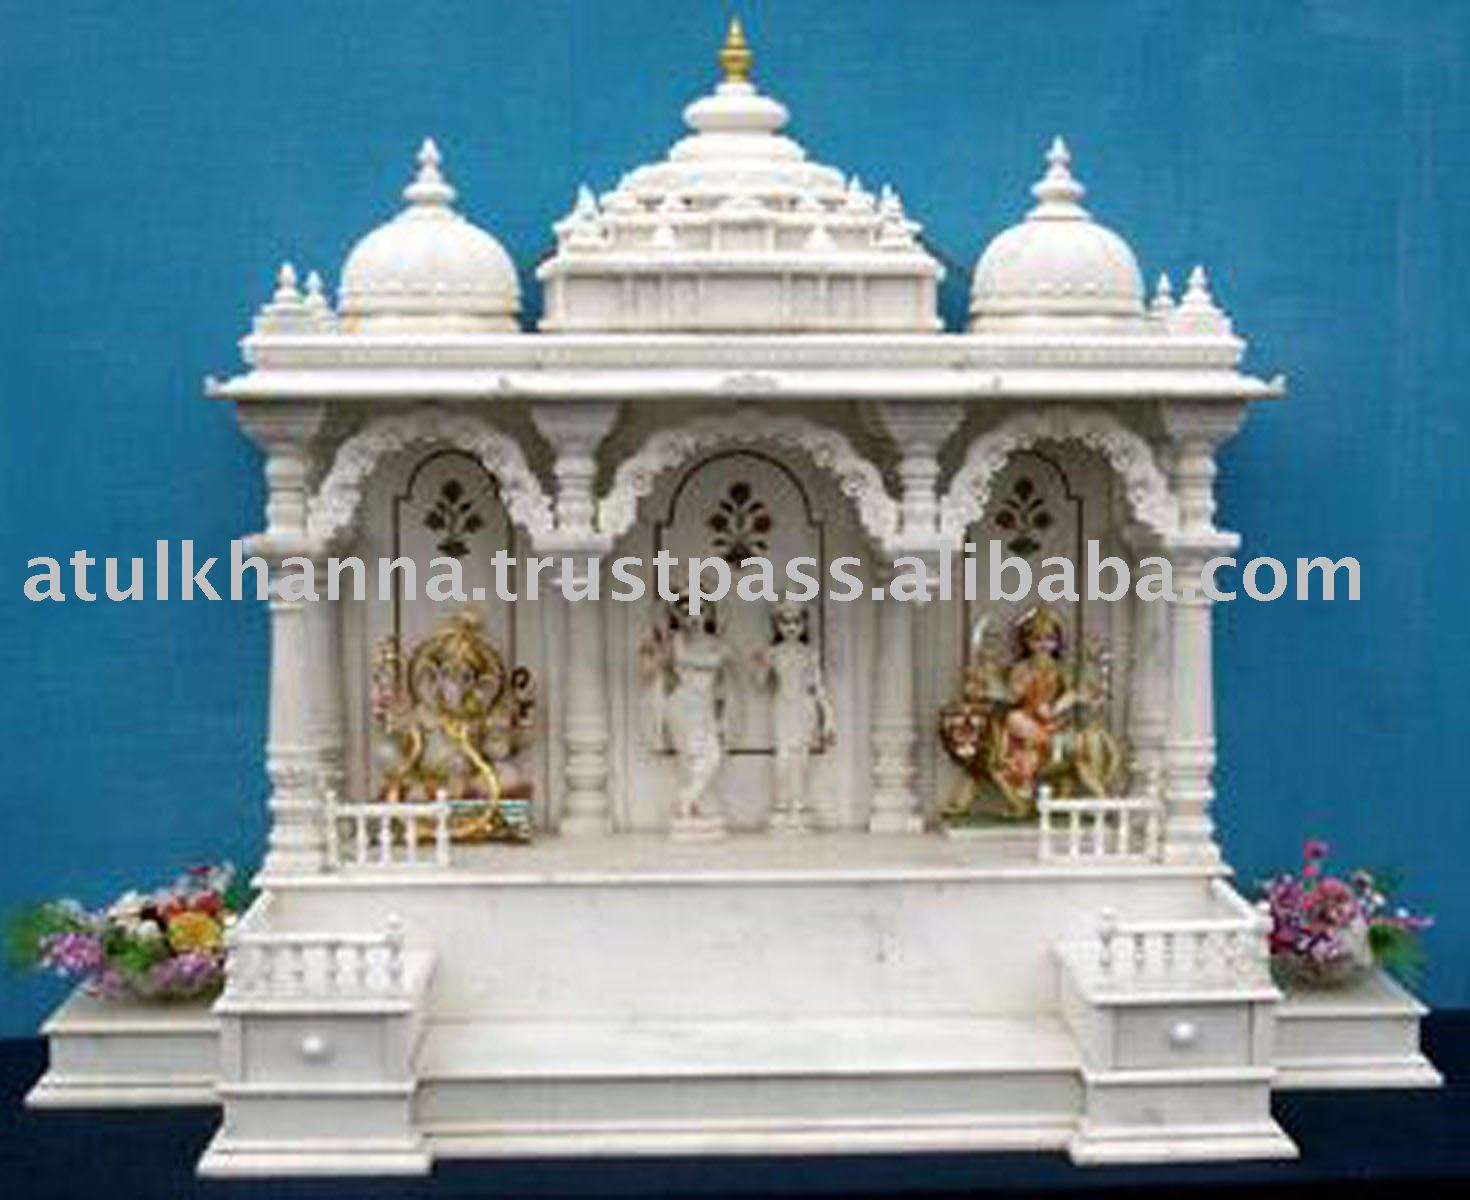 Best Kitchen Gallery: Marble Temple And Mandir Buy Marble Temple Marble Mandir Stone of Marble Mandir For Home on rachelxblog.com